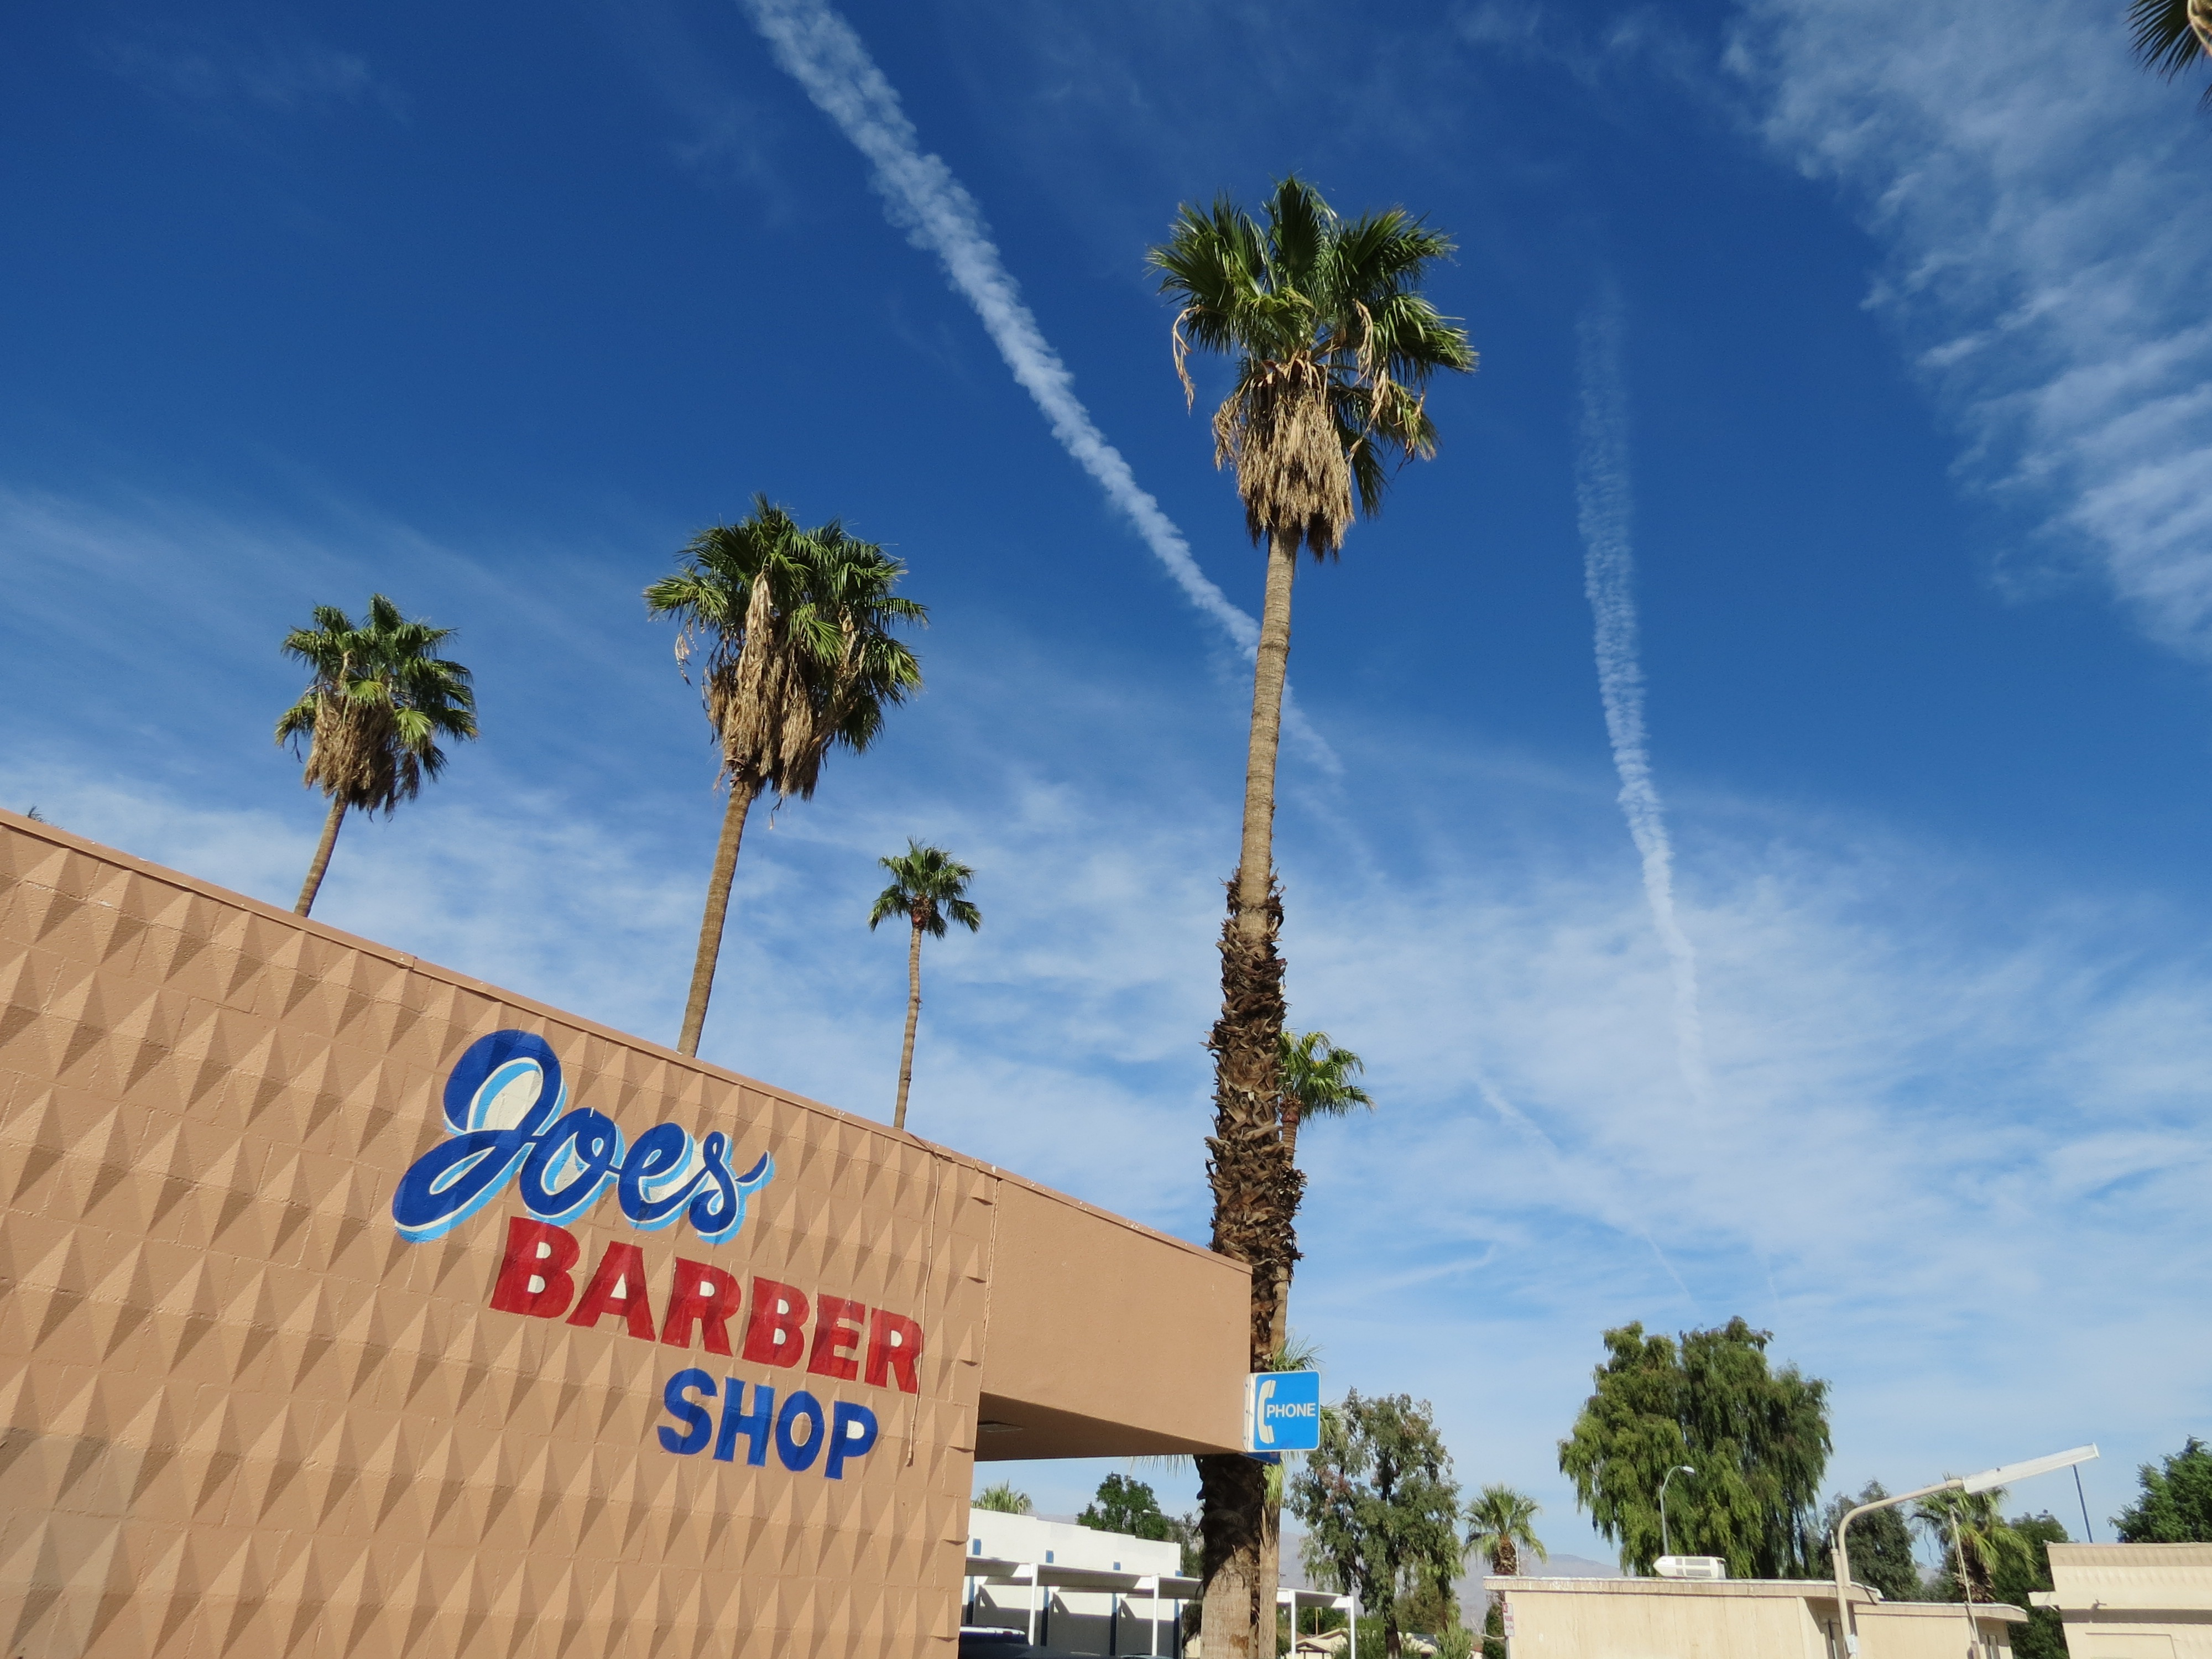 Chemtrails Over Joe's Barber Shop - Indio, California